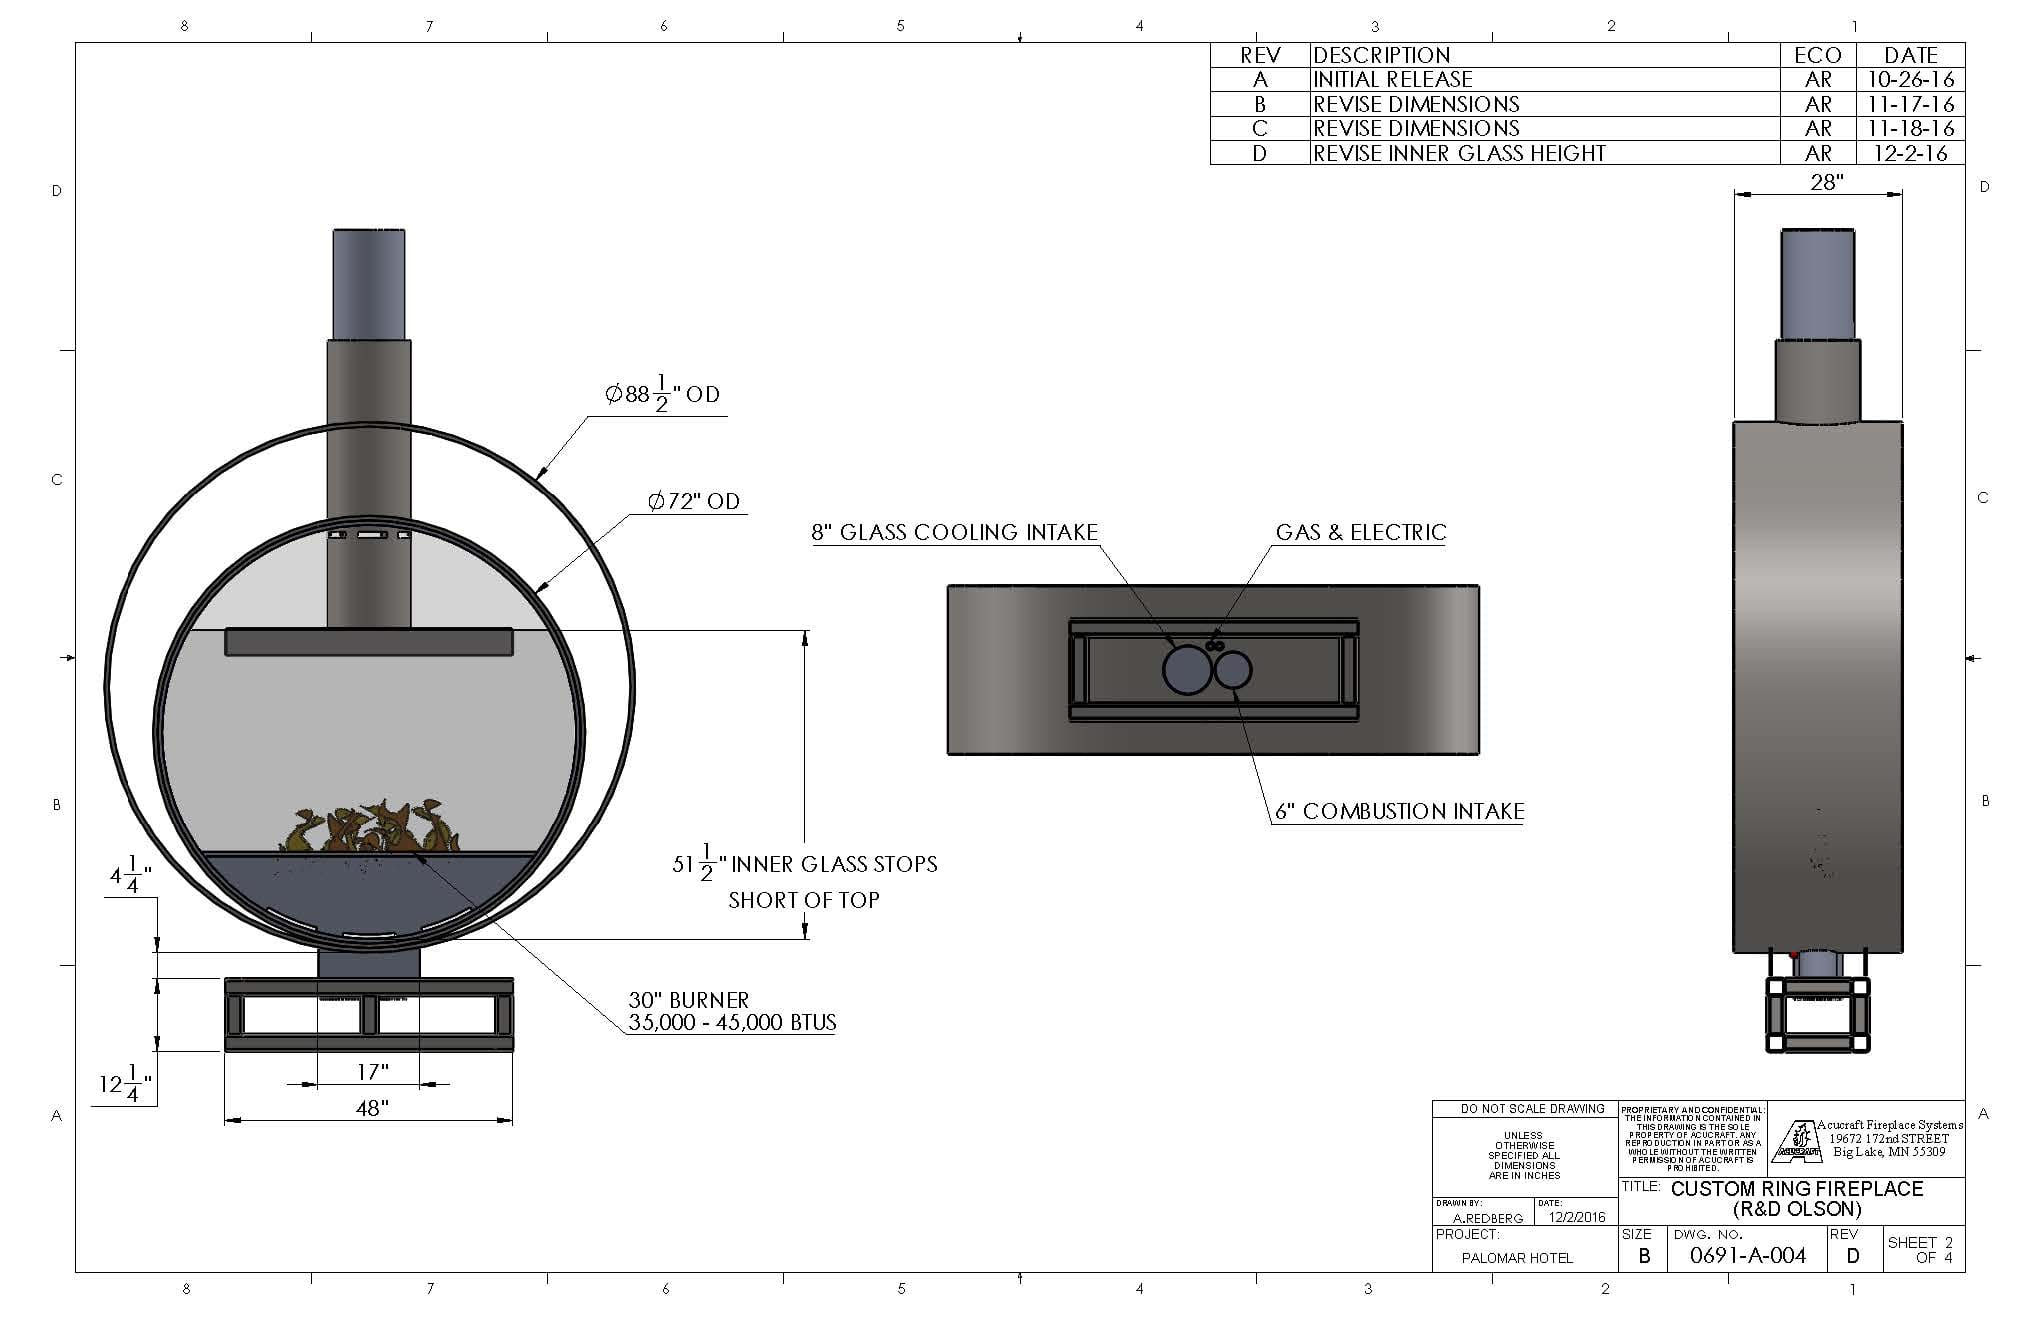 gas fireplace wiring diagram Collection-Acucraft Custom Gas Circular Double Ring Fireplace Palomar Hotel Design Drawing 2 9-l